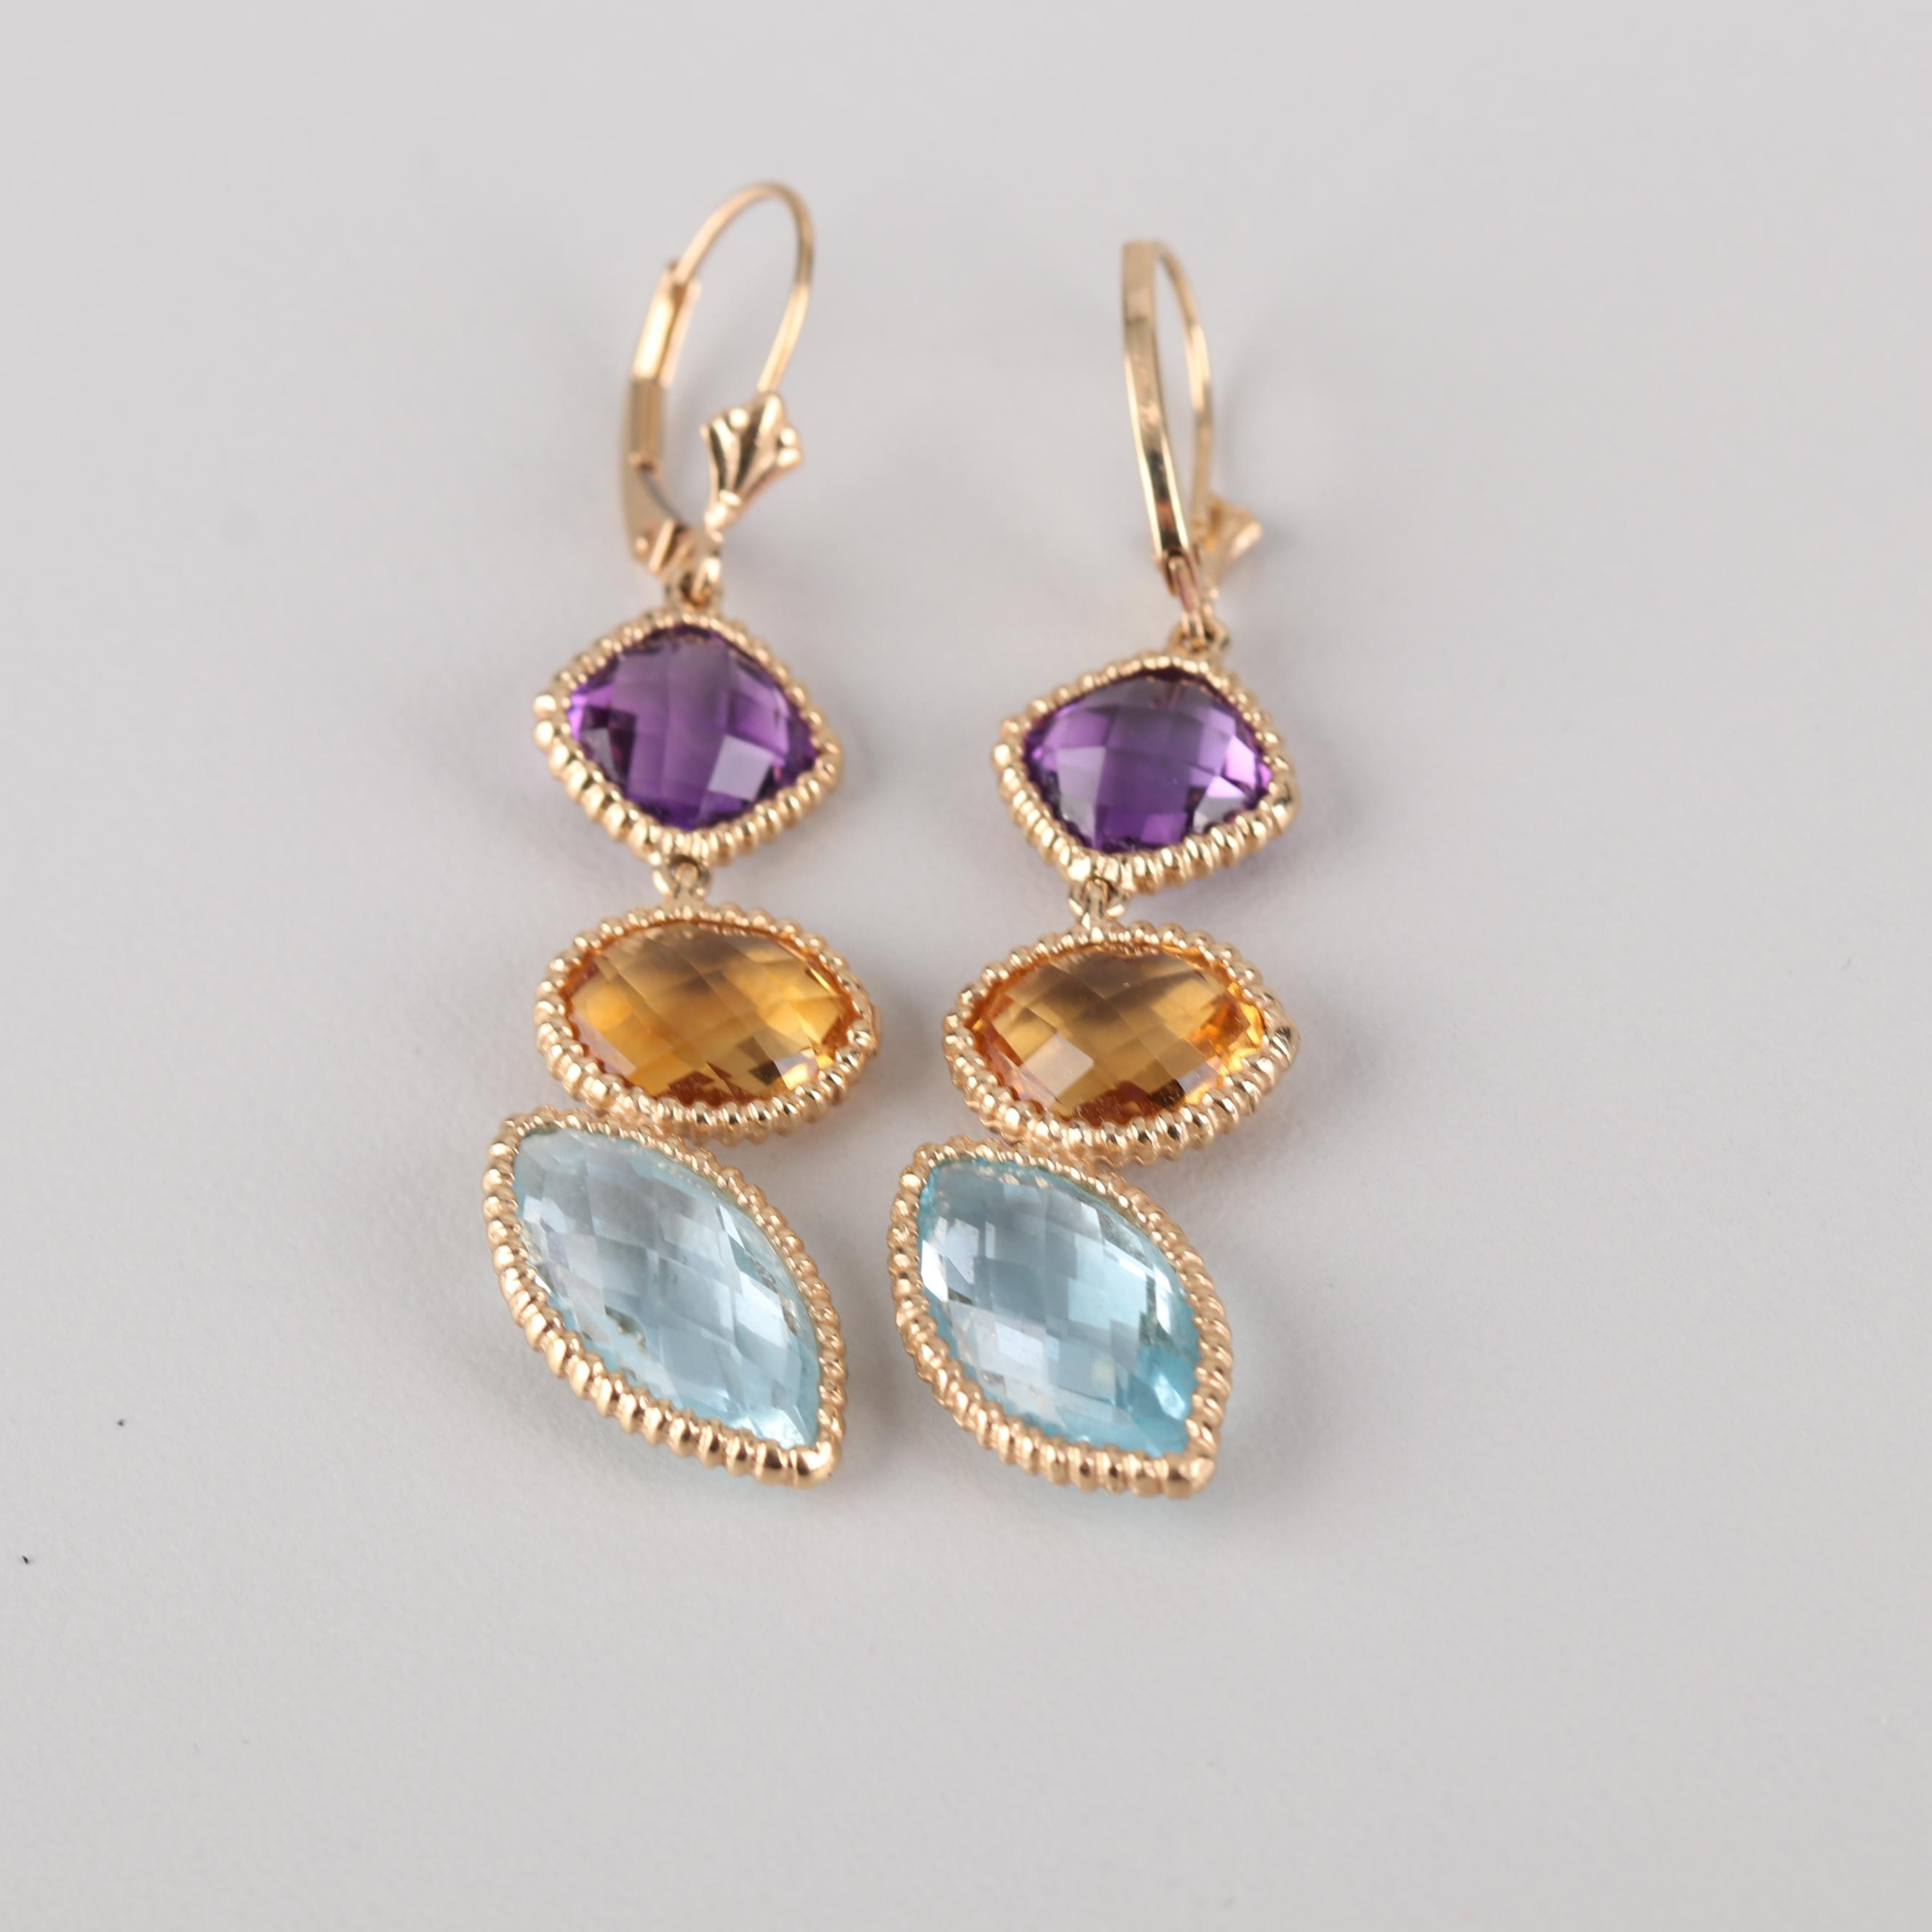 14K Yellow Gold Blue Topaz, Citrine, and Amethyst Earrings